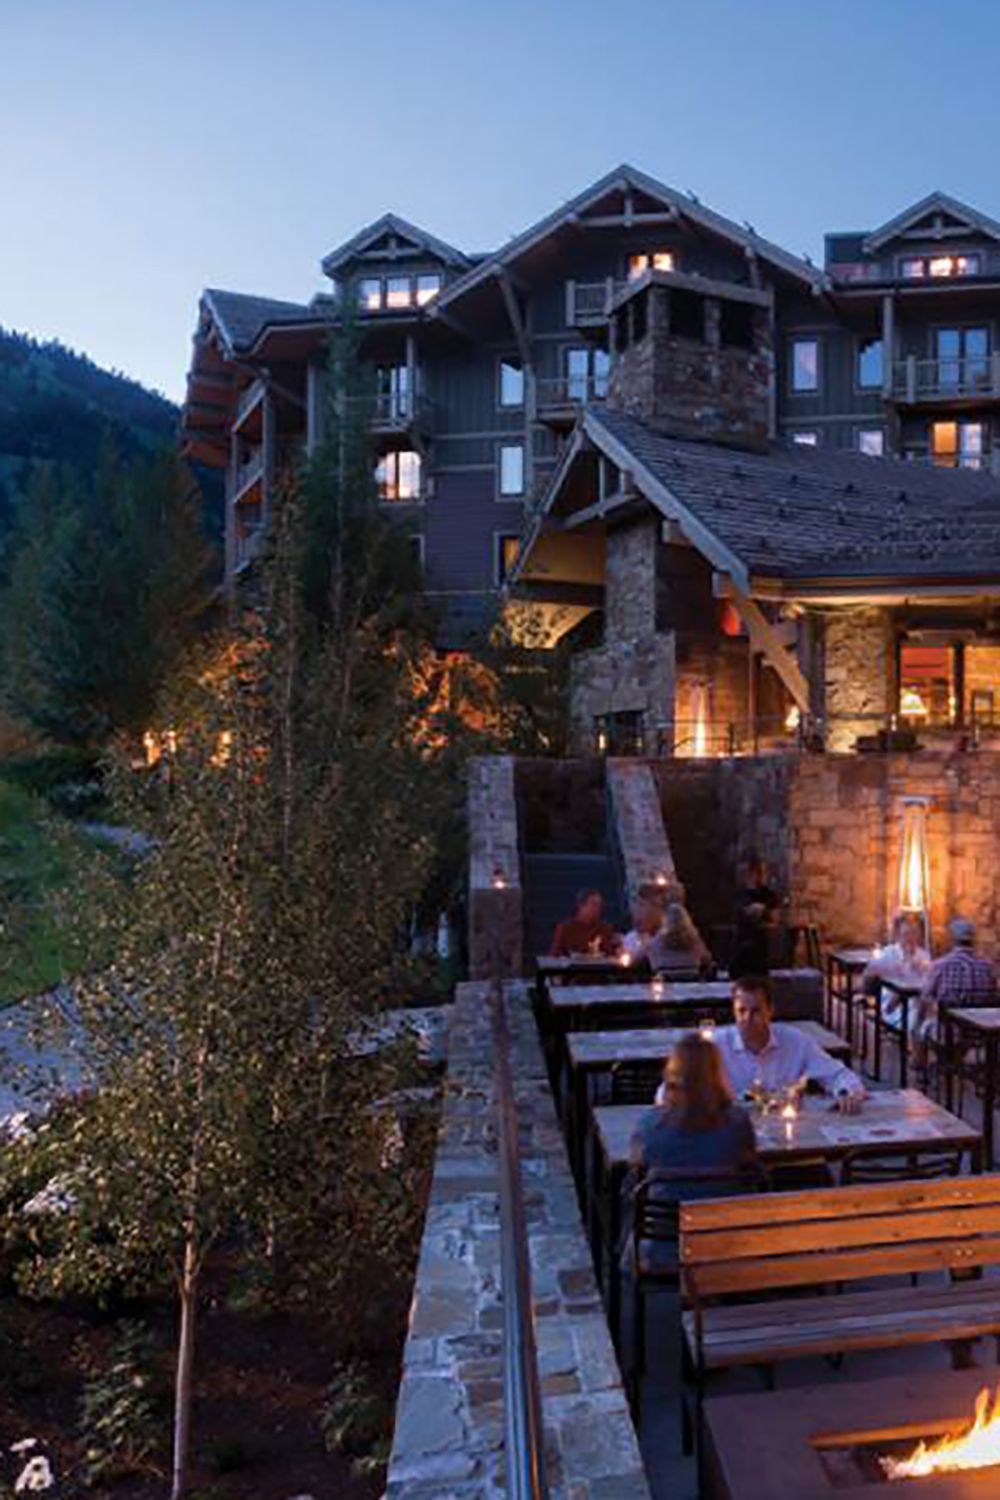 "<p>Sometimes the best way to unwind from a day full of strenuous ski exercise is...with more exercise. <a href=""http://www.fourseasons.com/jacksonhole/"">The Four Seasons Jackson Hole</a> offers guests a complimentary après ski yoga class to loosen up those sore muscles—you will not believe the kind of relief yoga stretching provides after skiing, especially when you're on a multi day trip.